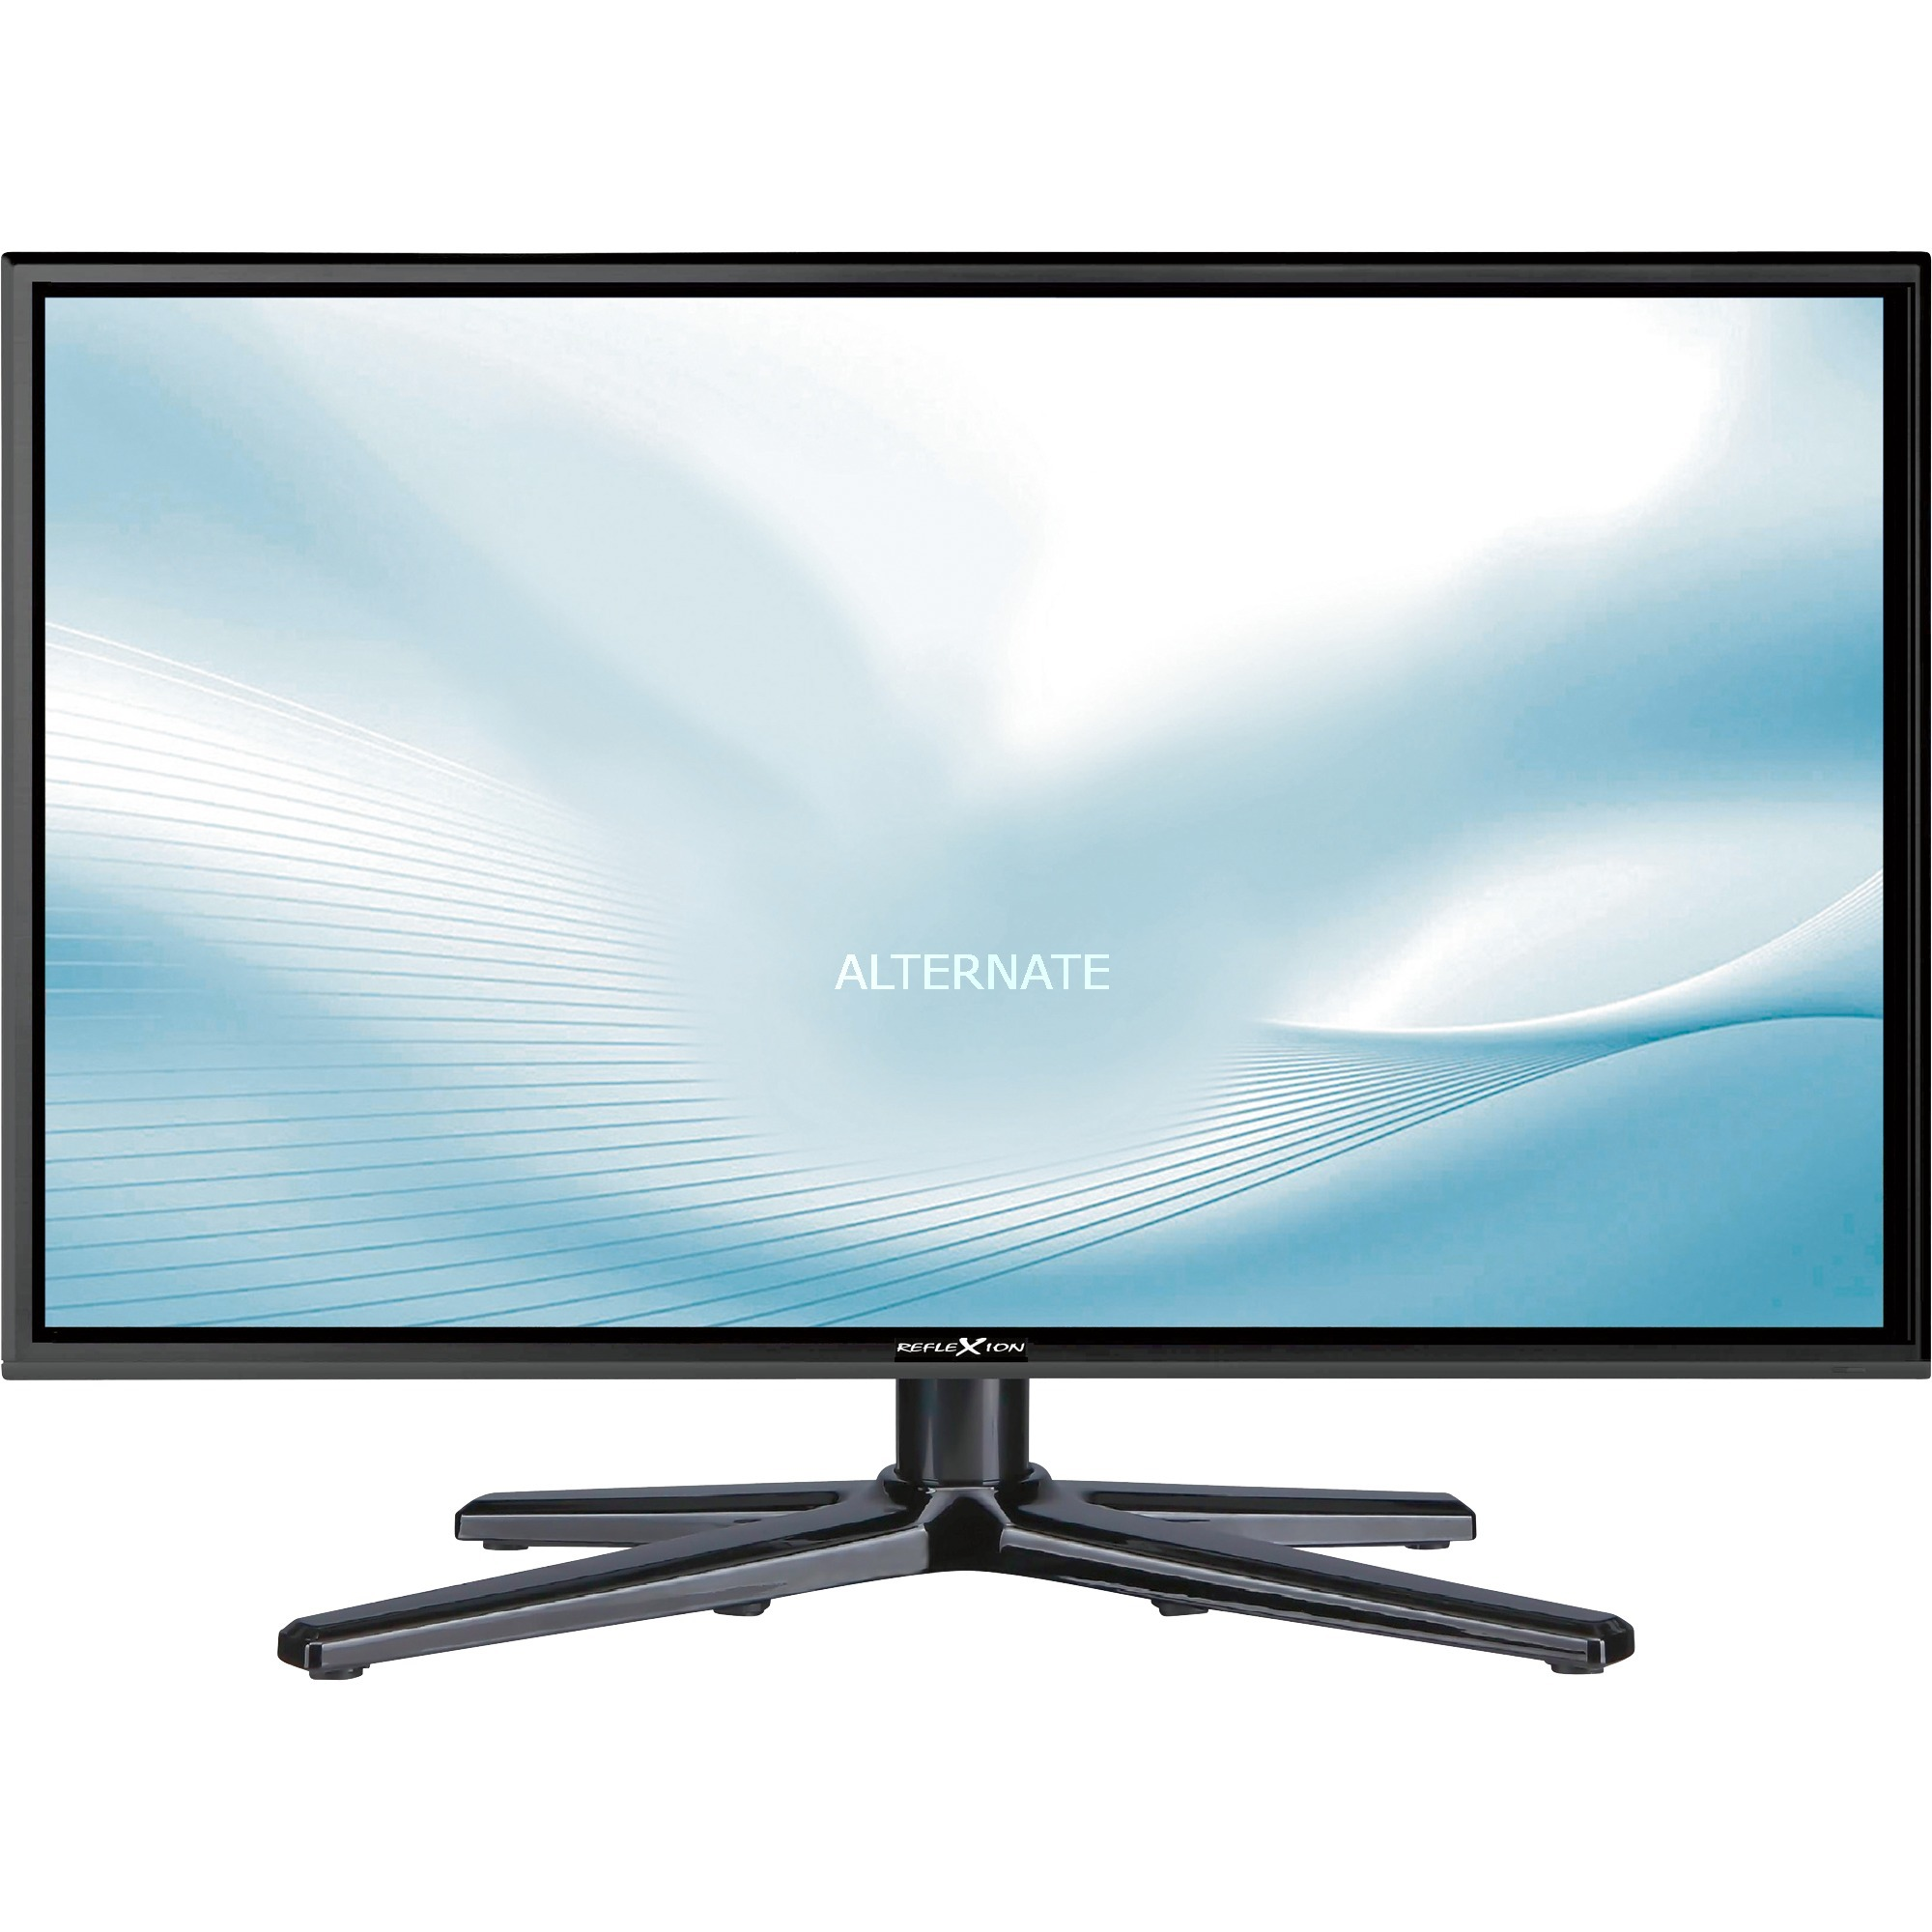 ledw24-236-full-hd-sort-led-tv-led-tv